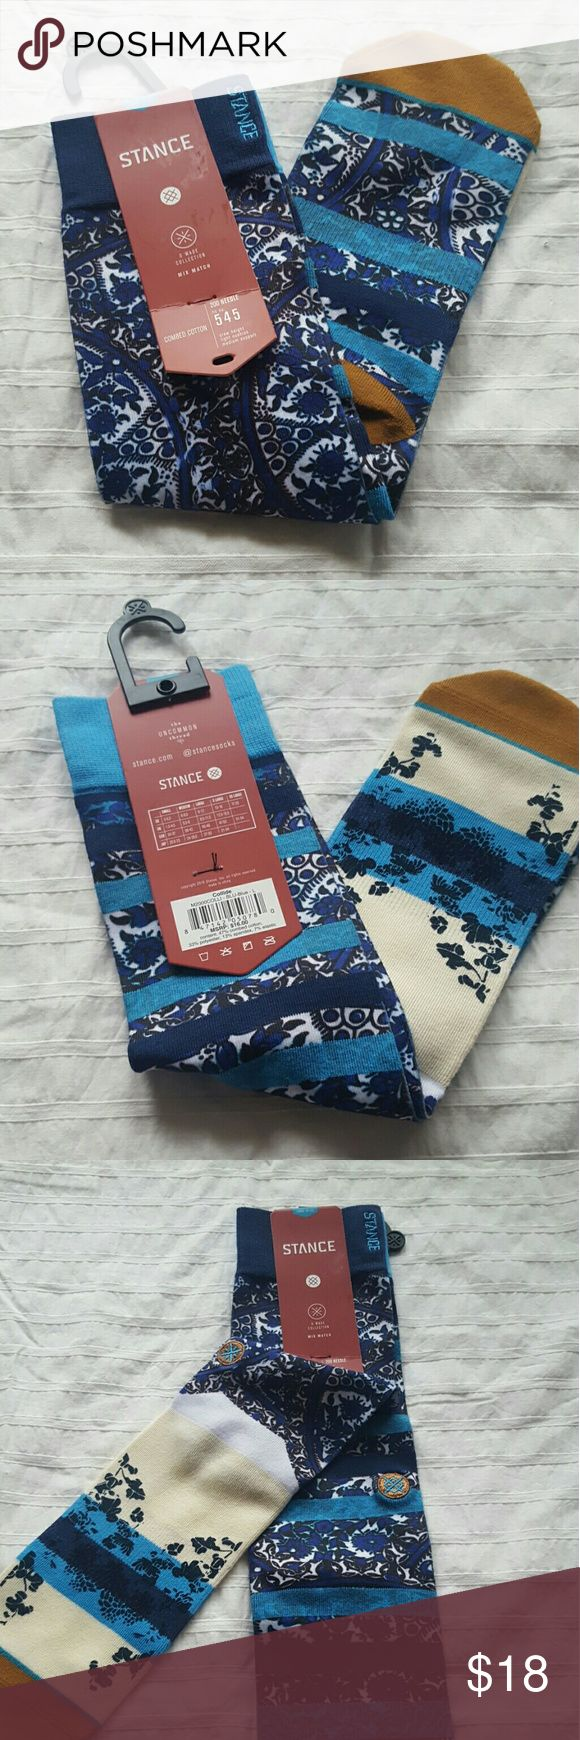 Stance Dwayne Wade Collection Socks- L NWT Men's D Wade Collection mix match socks. Size Mens Large and will fit shoe sizes (9 - 12) Stance Underwear & Socks Casual Socks